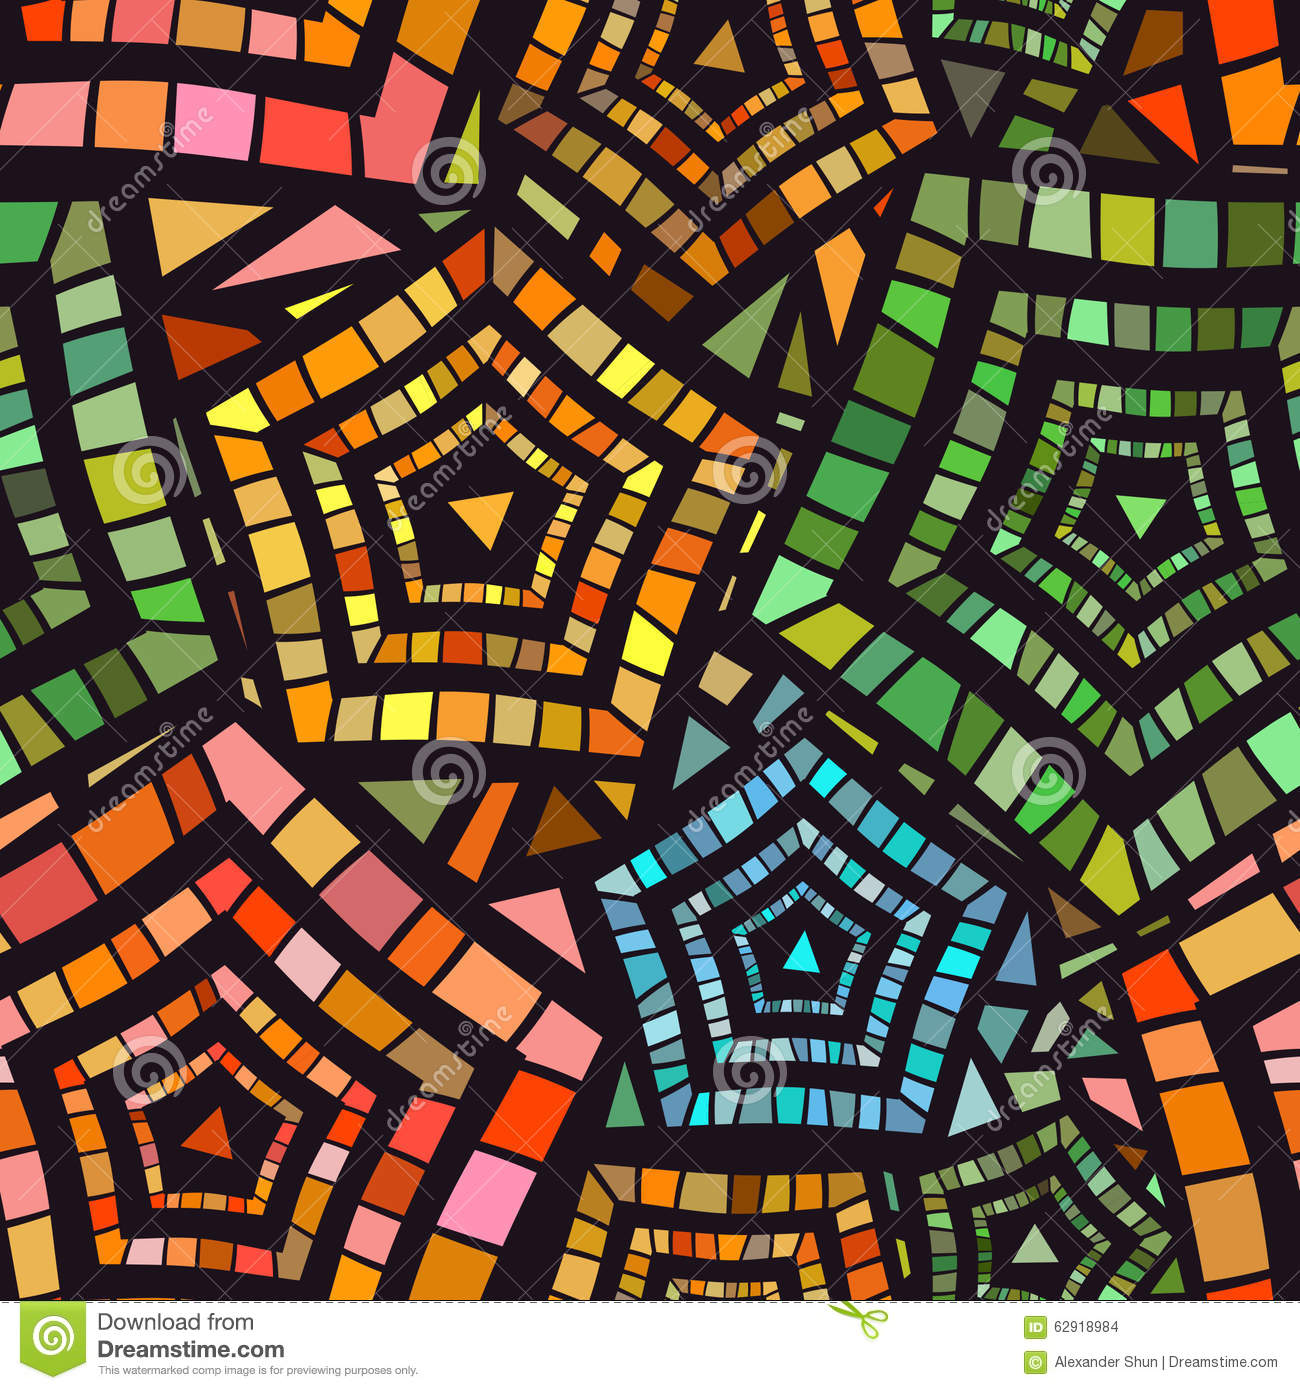 Seamless Mosaic Pattern for Textile Design